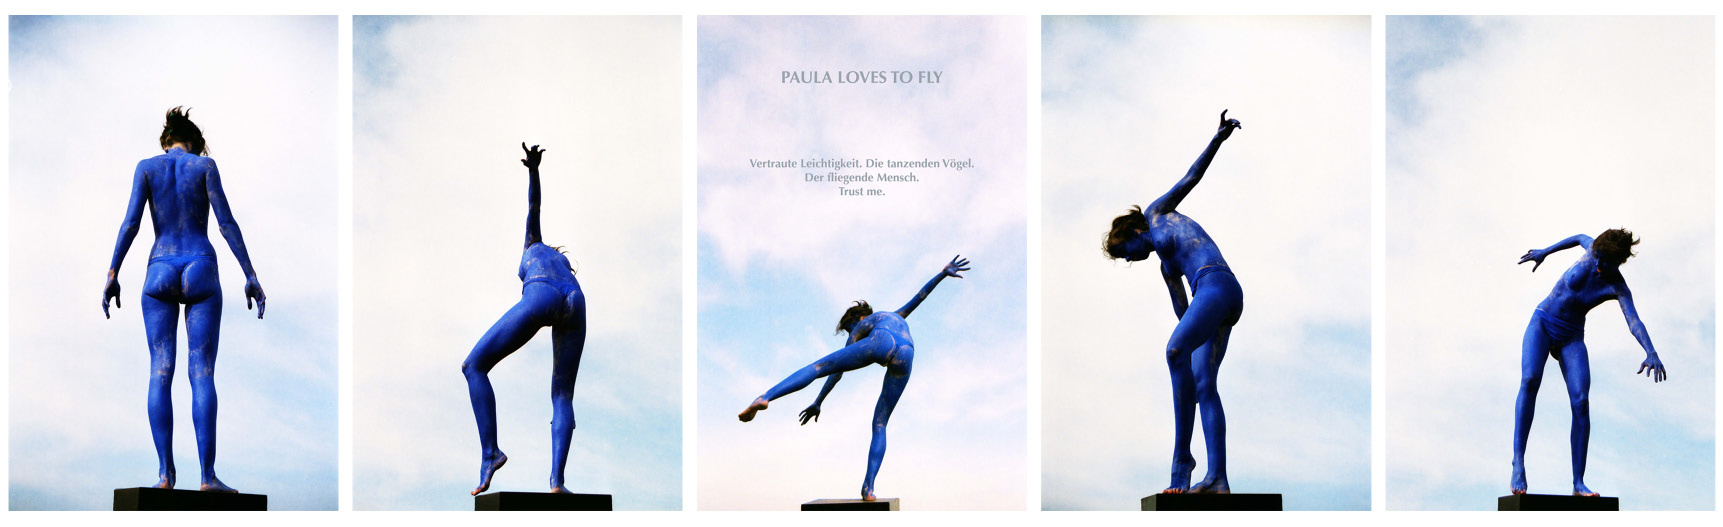 Paula loves to fly